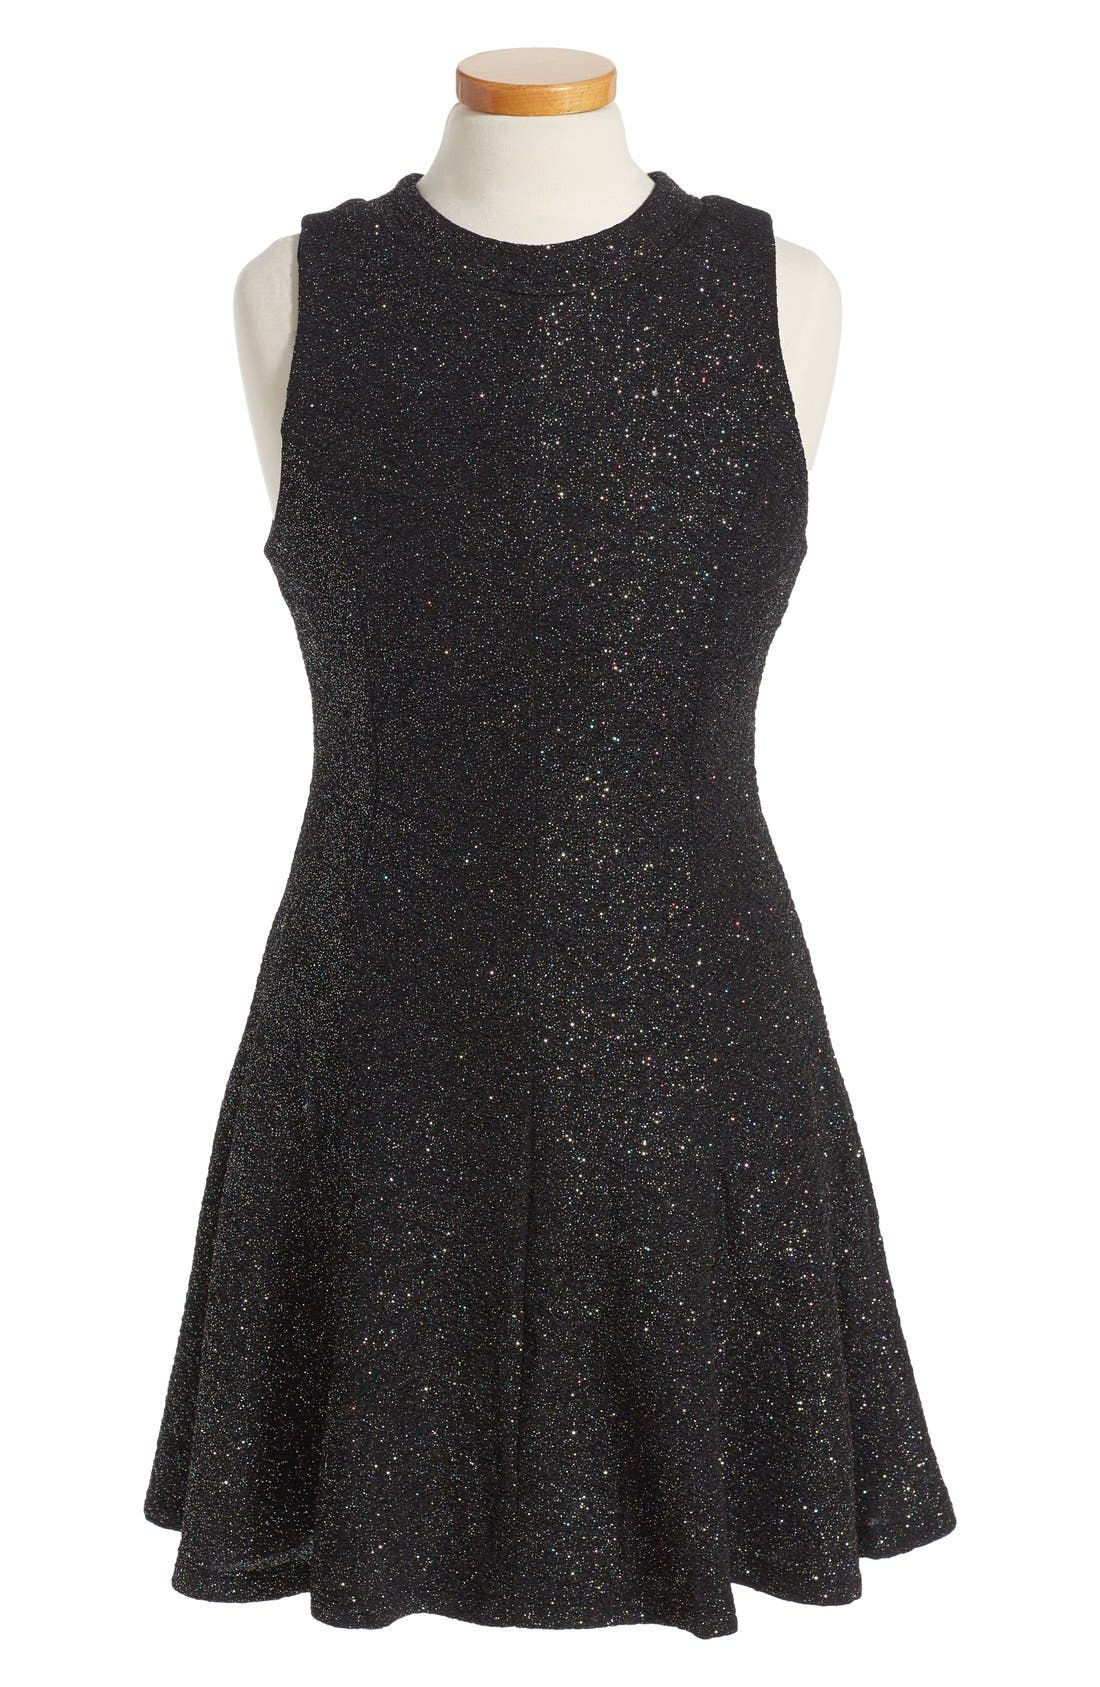 Volt and state black and white dress